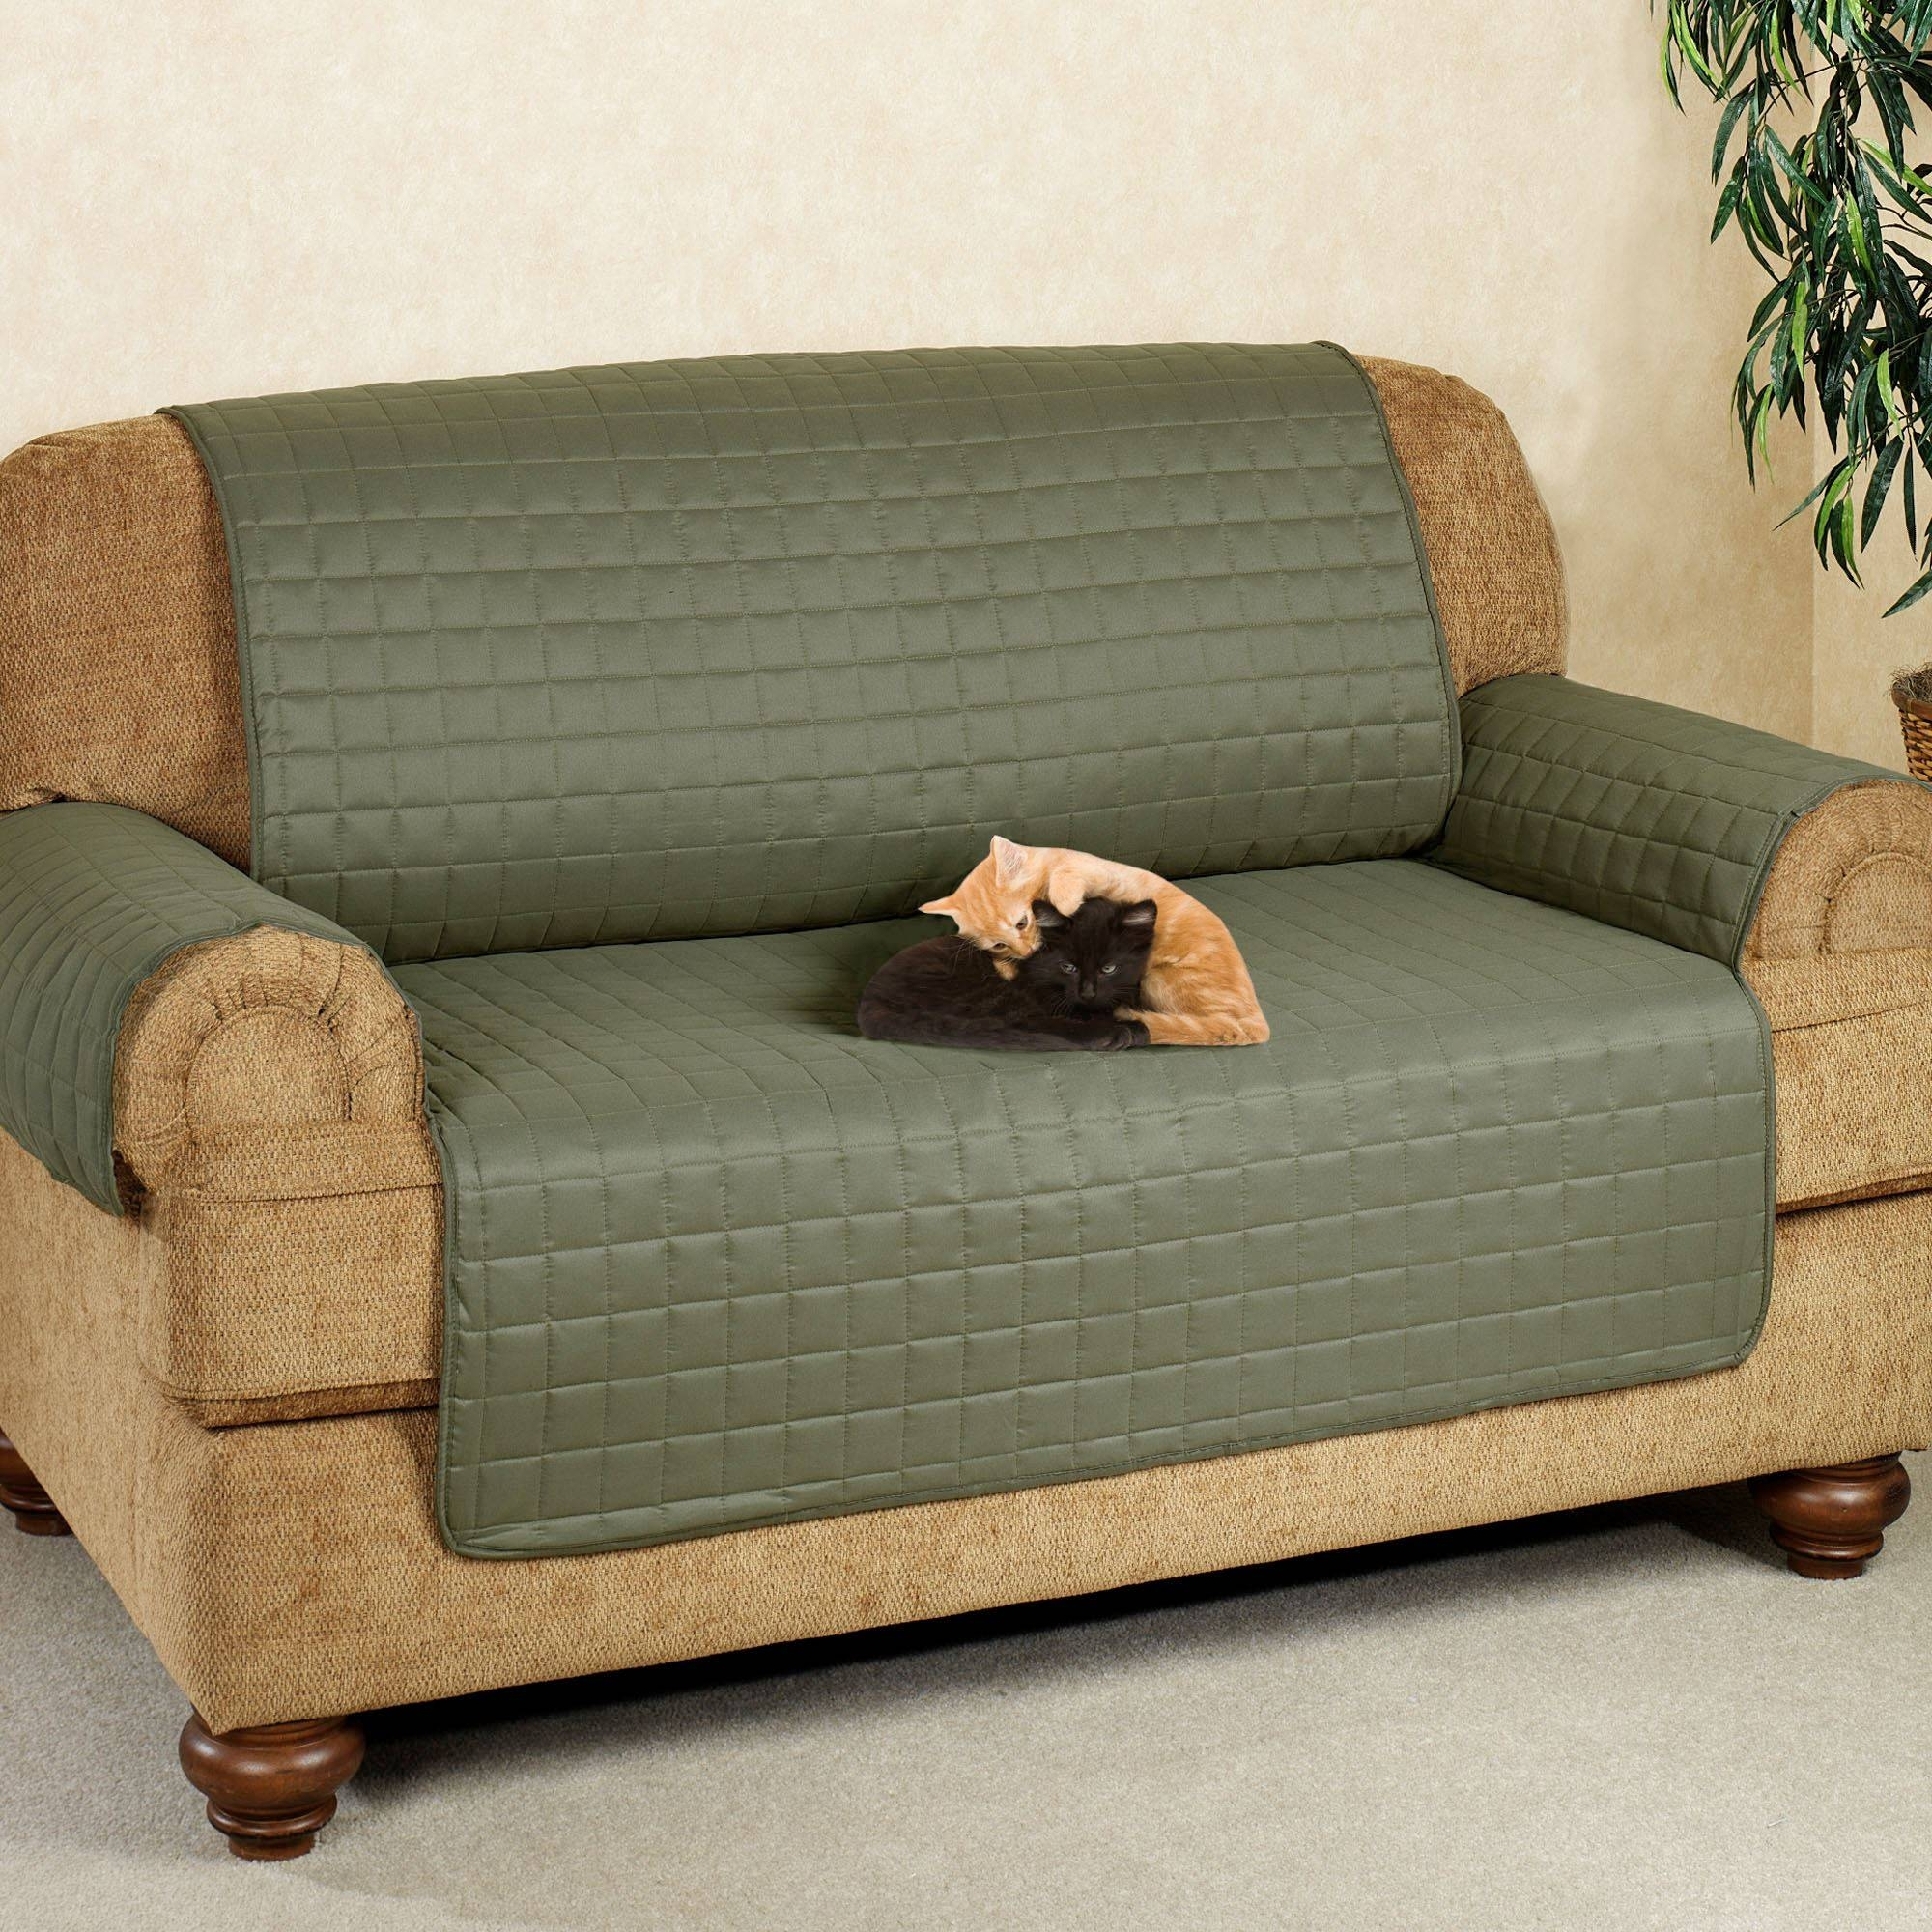 Sofas Center : Fascinating Pet Covers For Sofas Picture For Covers For Sofas And Chairs (View 13 of 15)